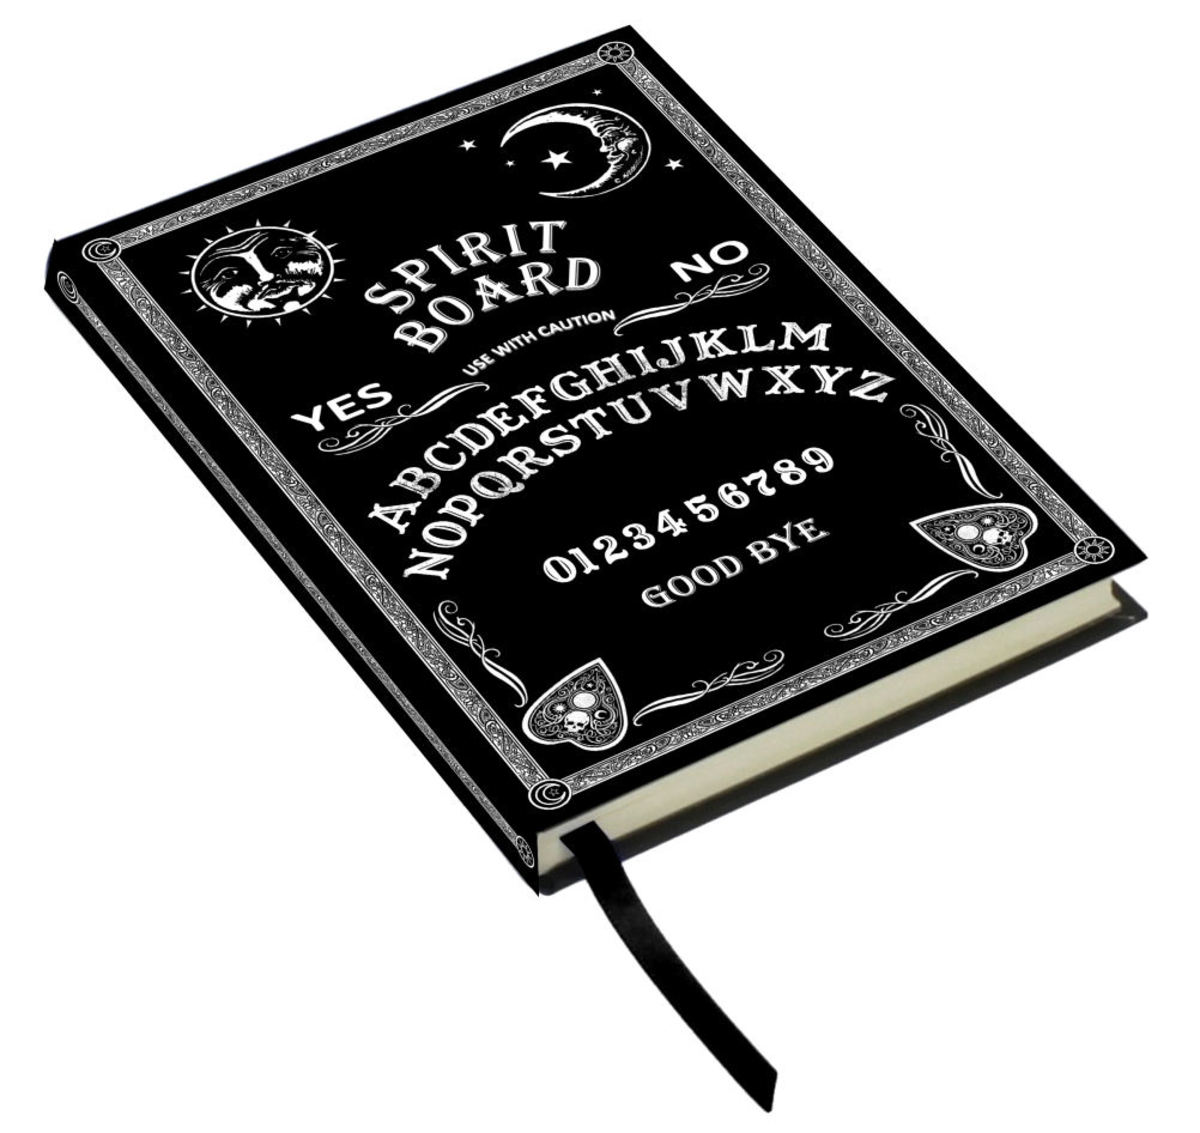 poznámkový blok Embossed Journal Black and White Spirit Board - B4293M8